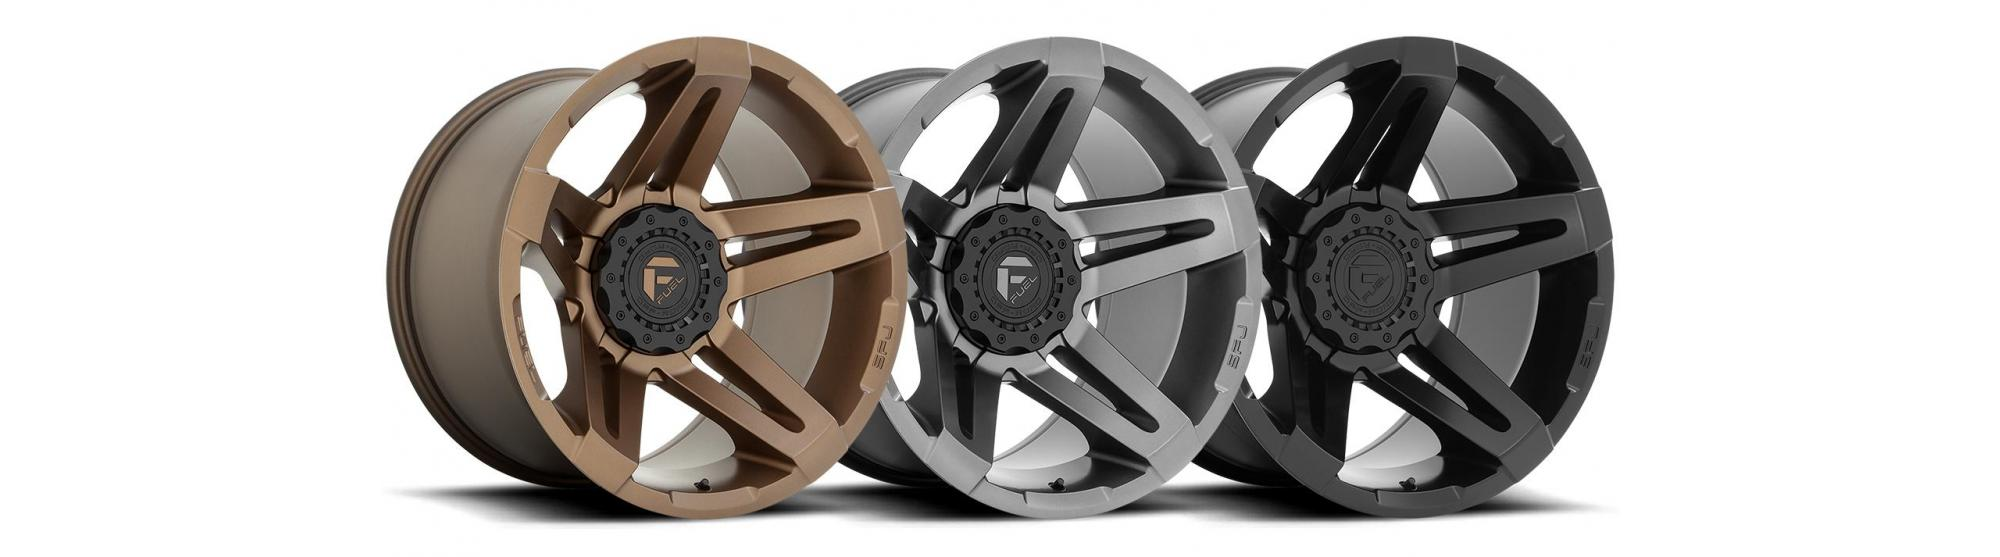 THE NEW SFJ FROM FUEL OFF-ROAD WHEELS